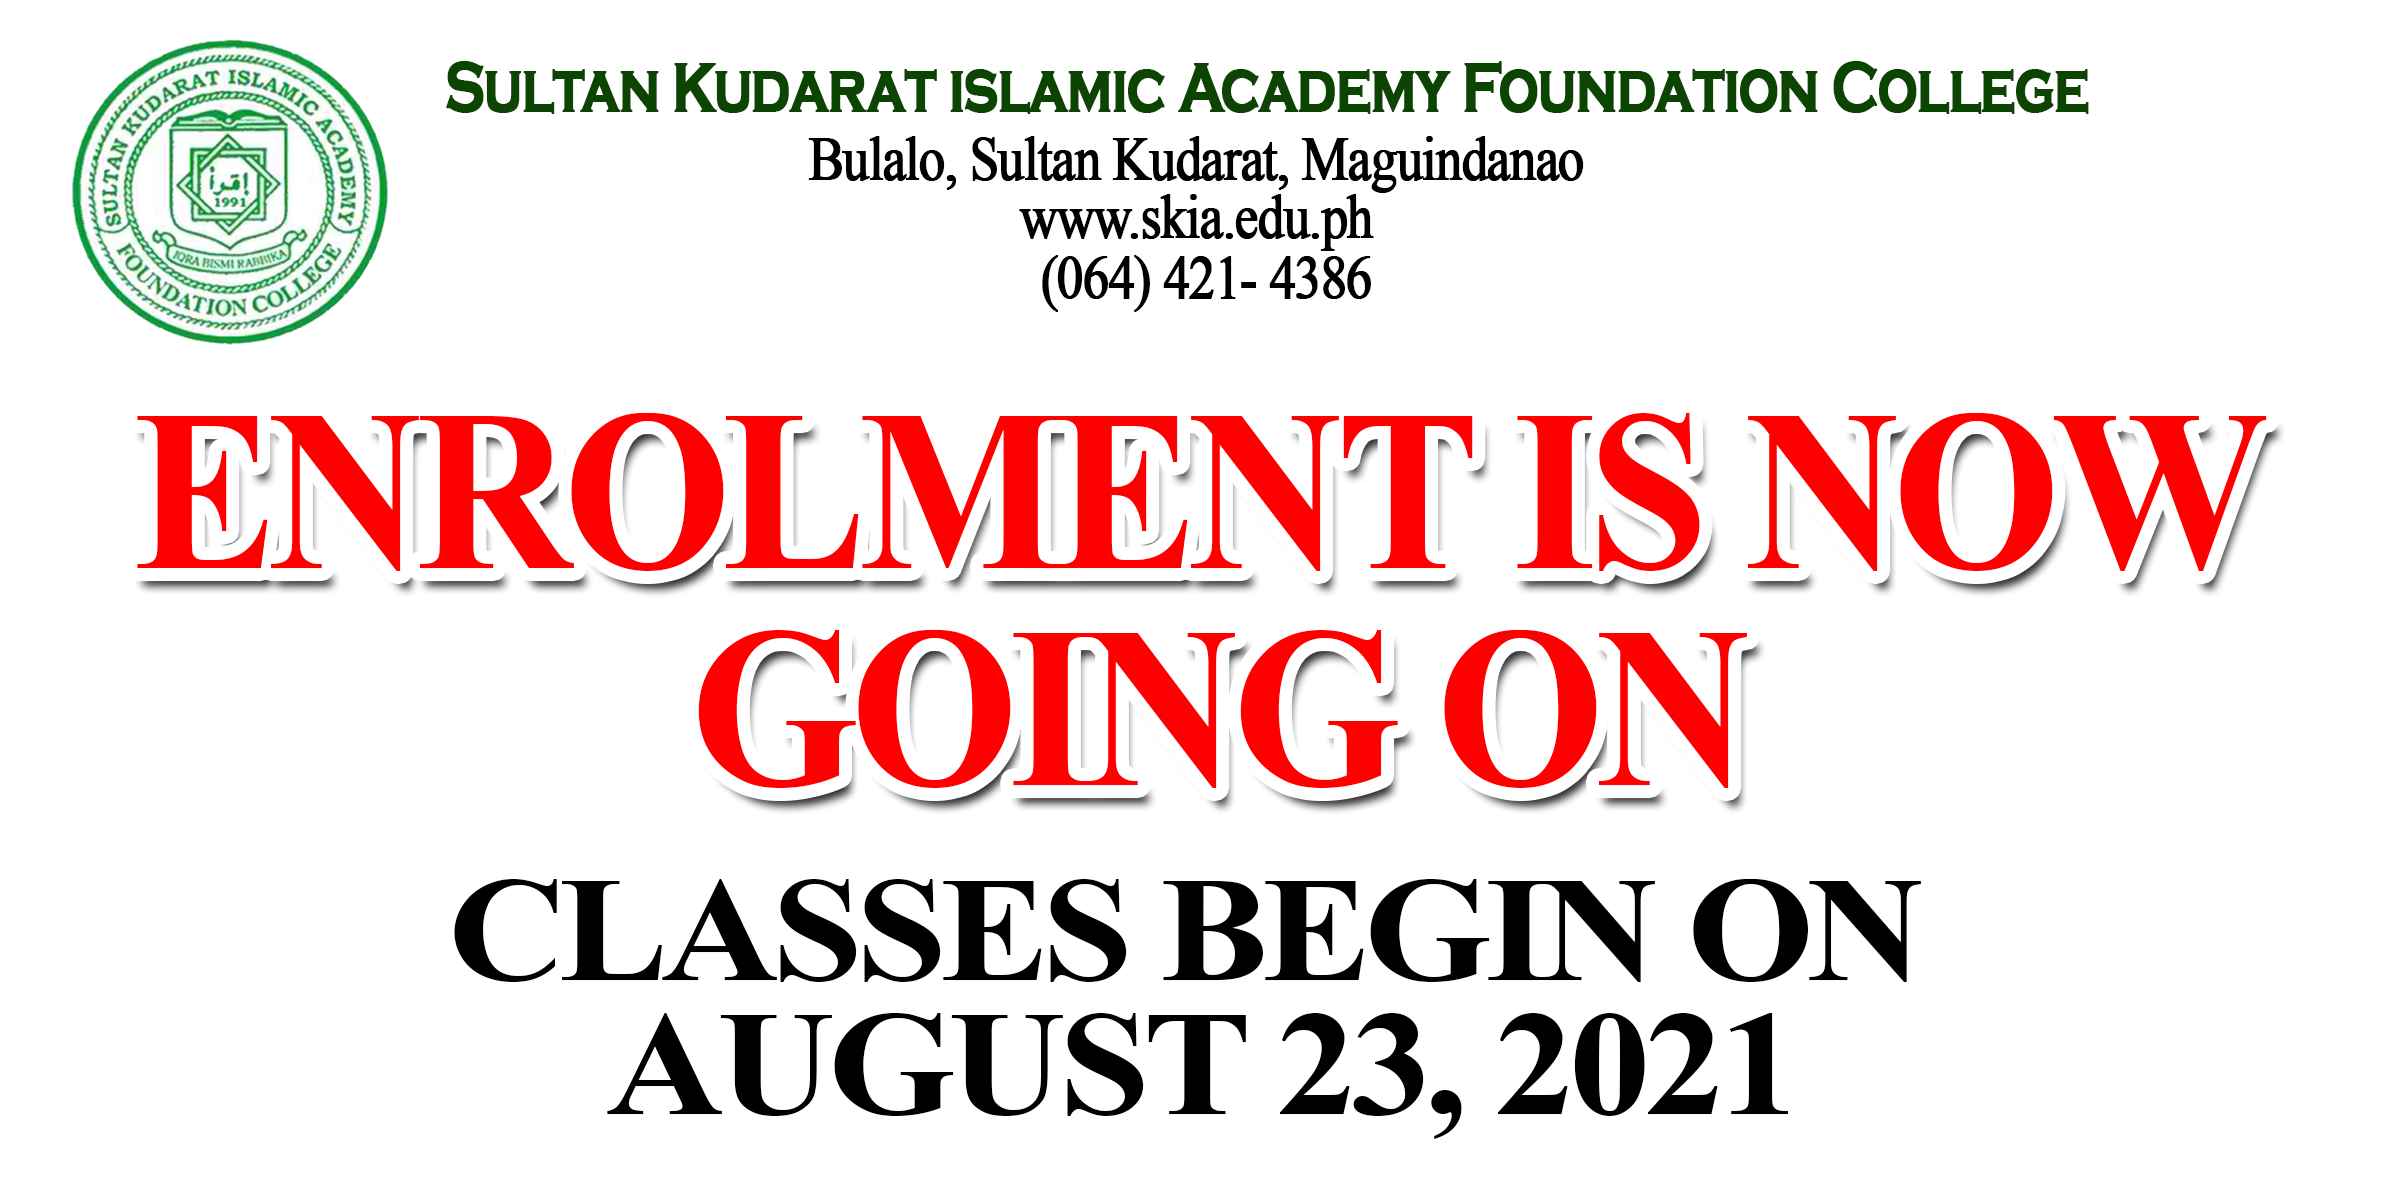 ENROLLMENT IS NOW GOING ON FOR S.Y. 2021-2022!